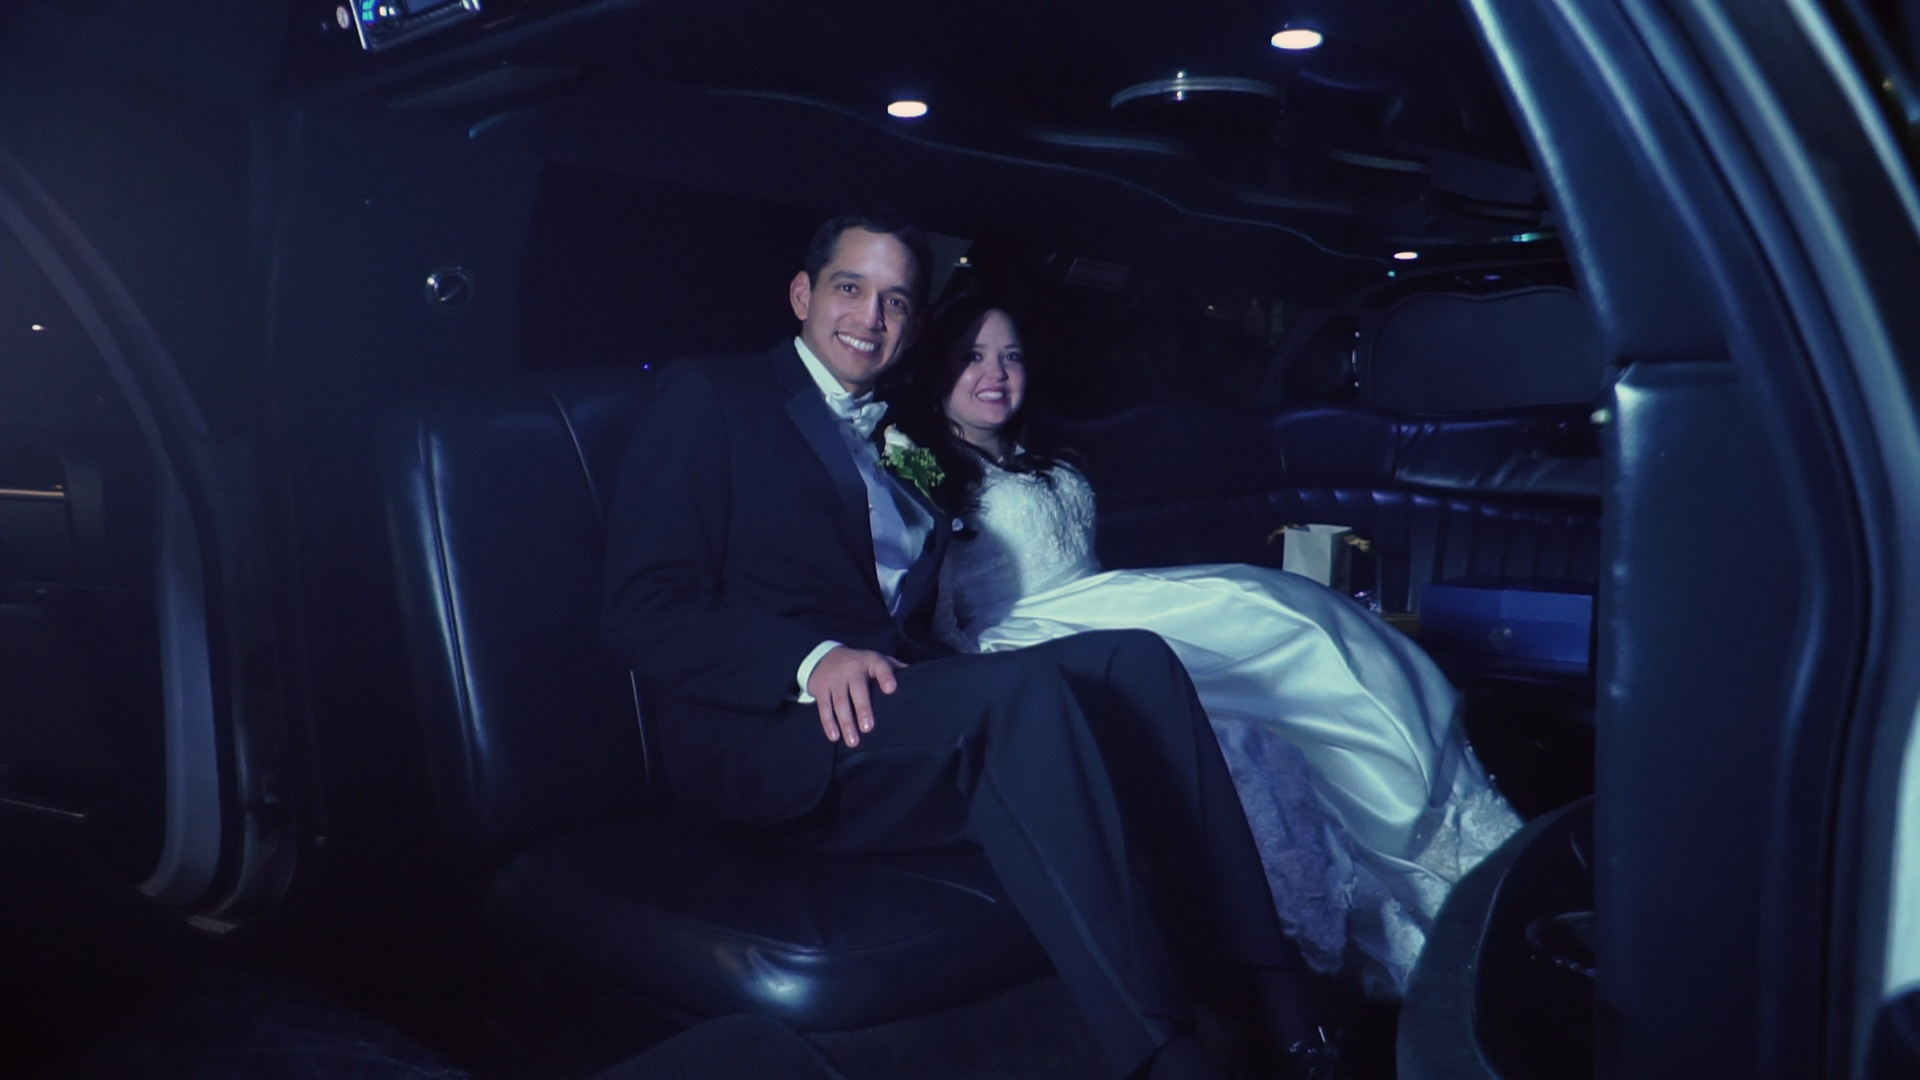 Bride and groom in a limo